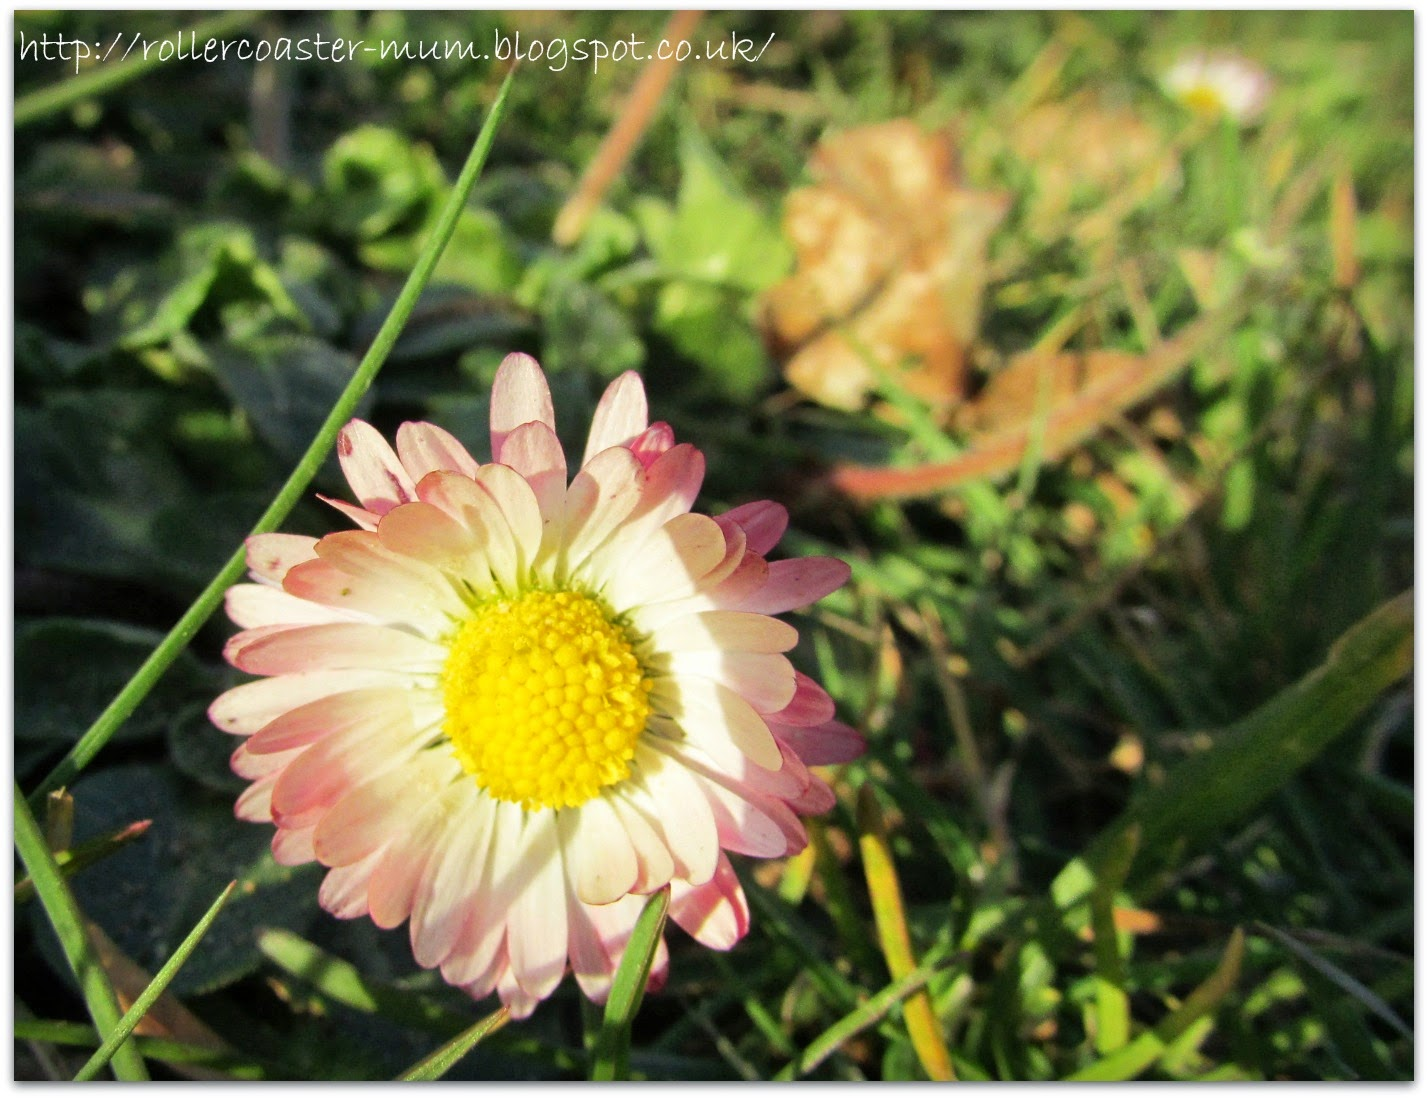 Pink and white daisy flower